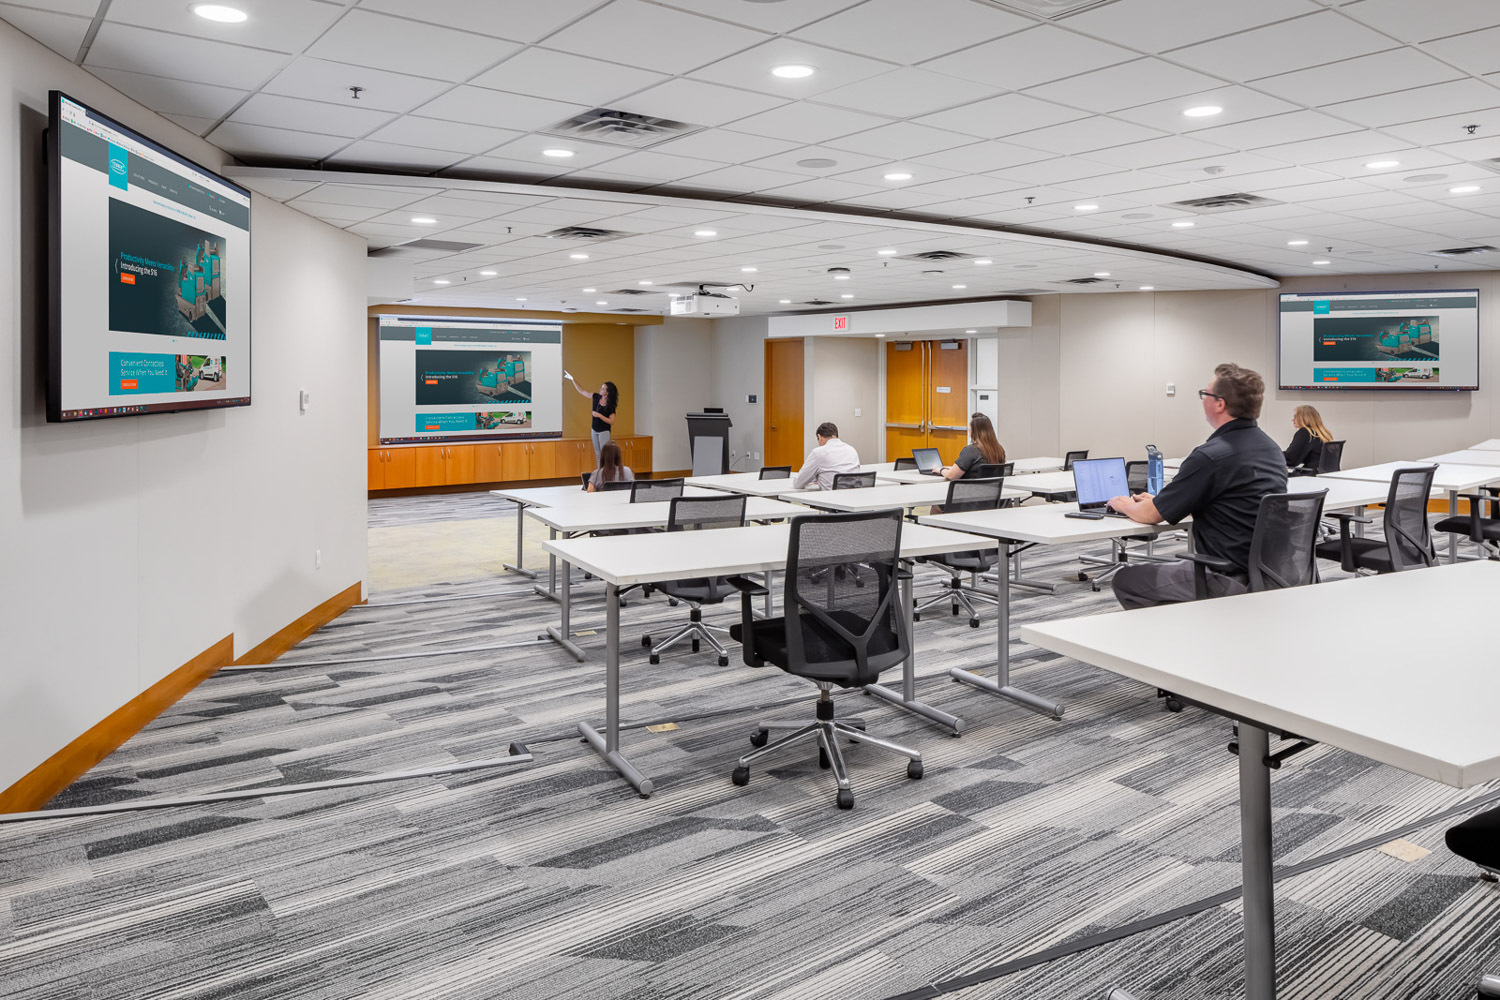 iSpace Environments Tennant Company Eden Prairie Minnesota Office Training Room Seating Desks Wall Mounted Displays Technology Design